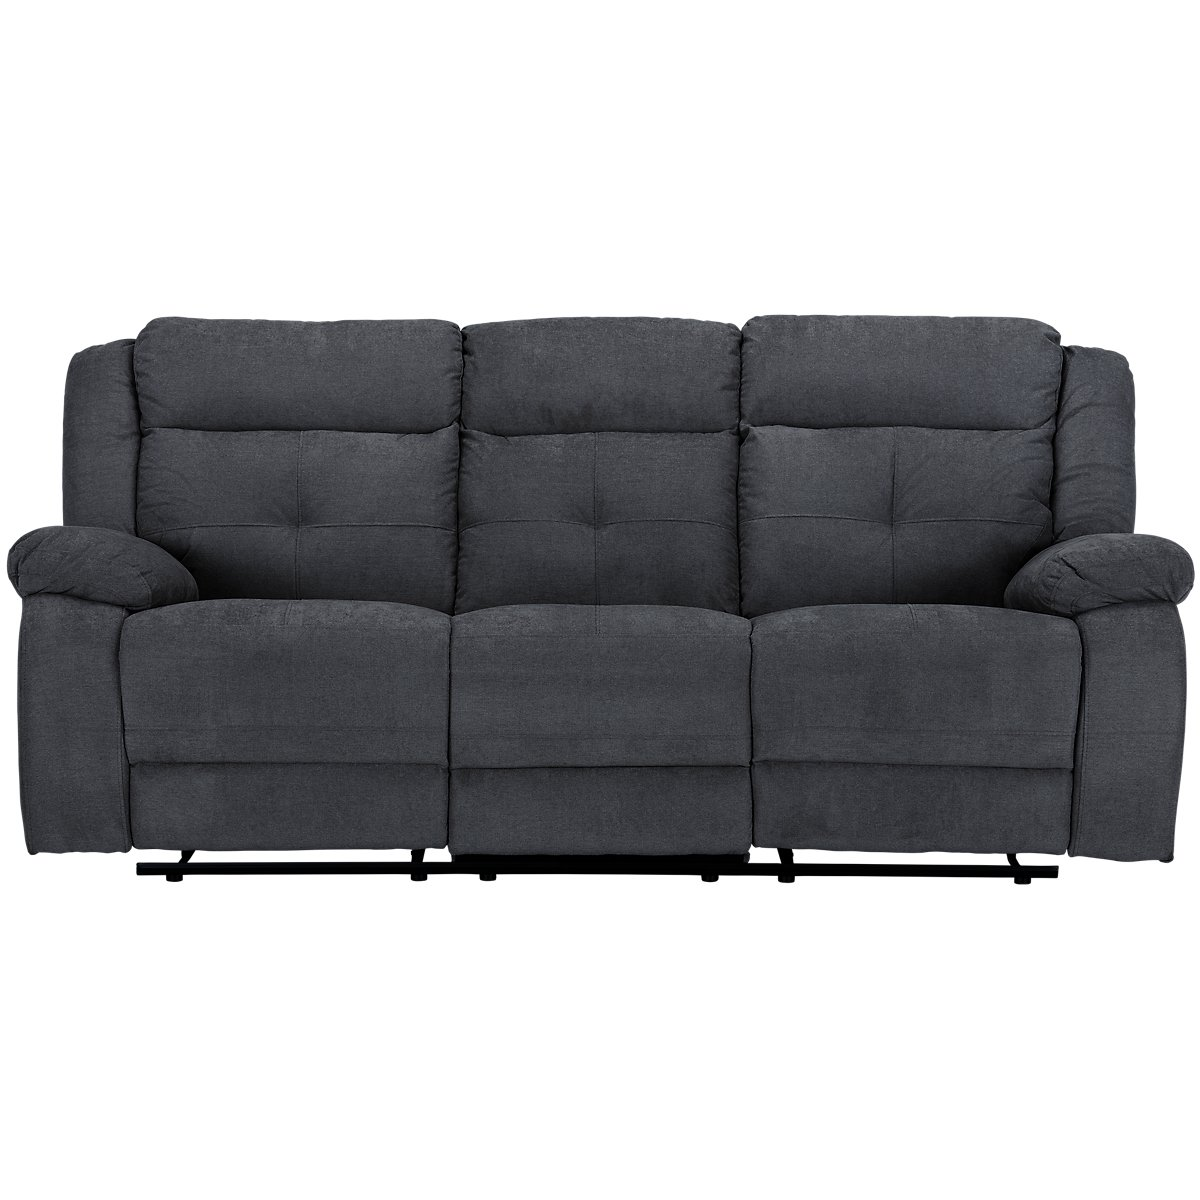 Microfiber Reclining Sofa Sets Microfiber Recliner Loveseat Sofa Set From Sears Thesofa